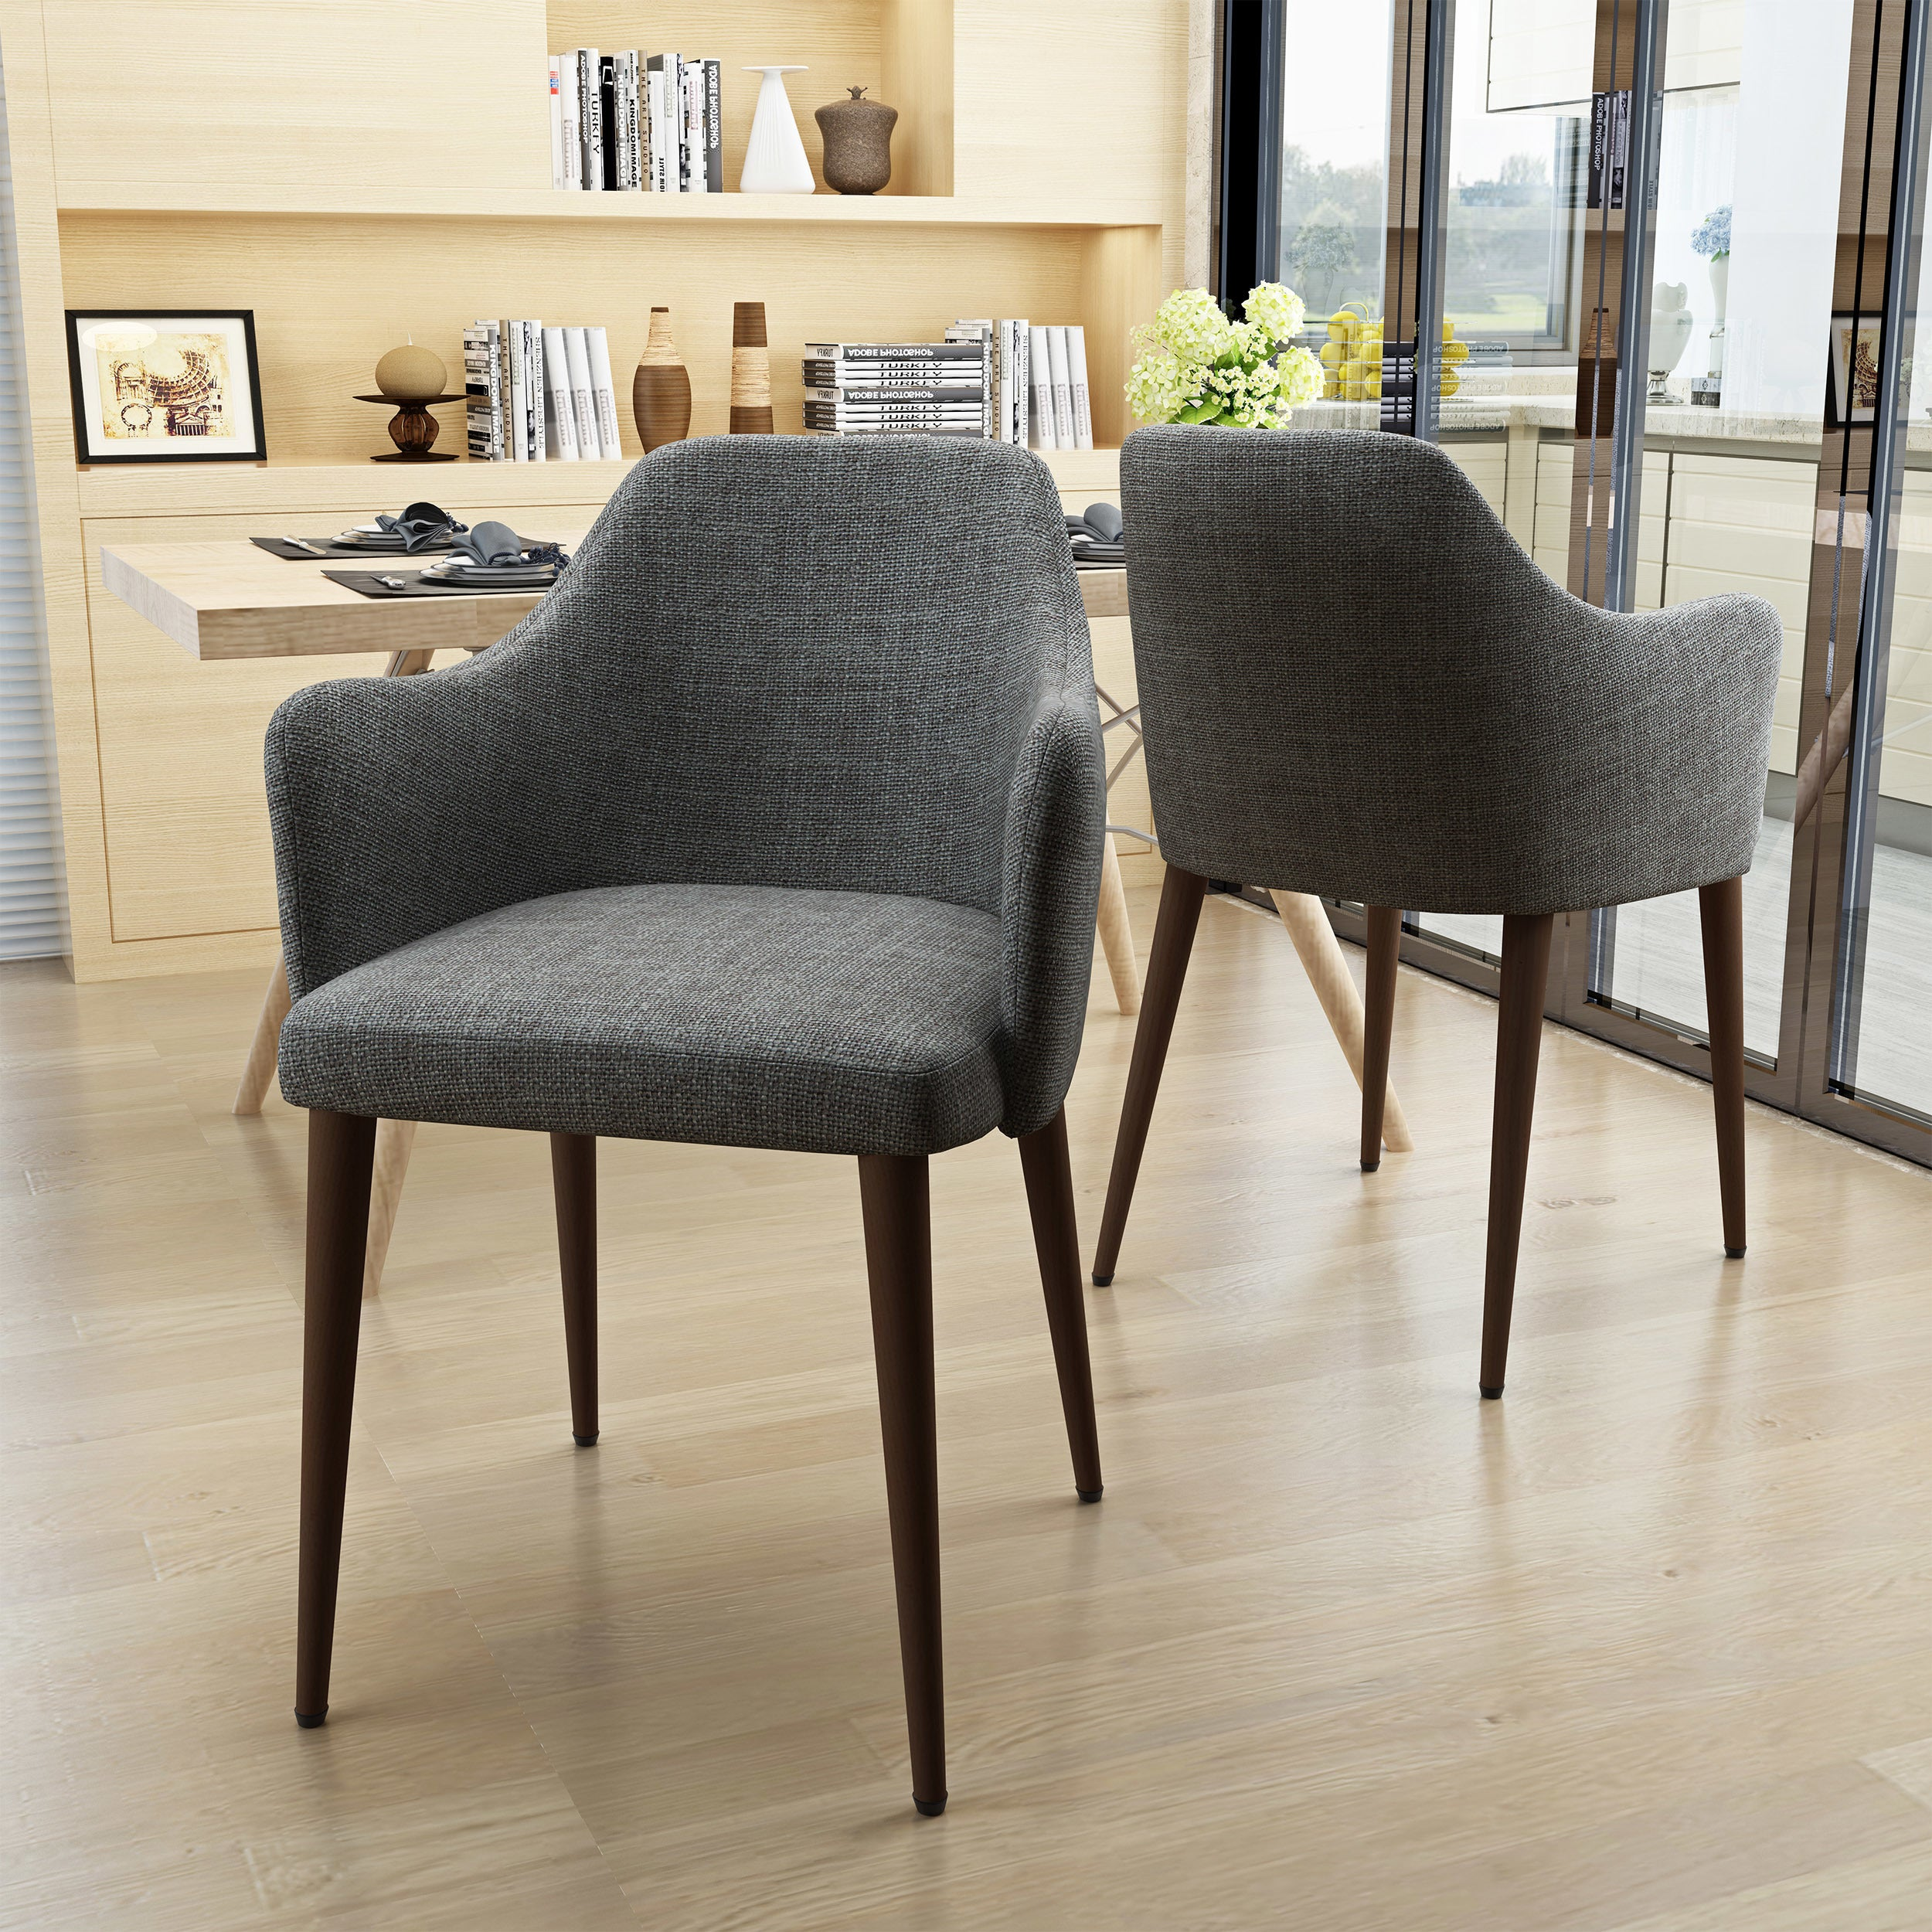 Cactus Yjcfurniture Dining Chairs Set Of 4 Mid Century Modern Side Chairs Retro Velvet Upholstered Dining Chair With Metal Tube Kitchen Dining Room Furniture Home Kitchen